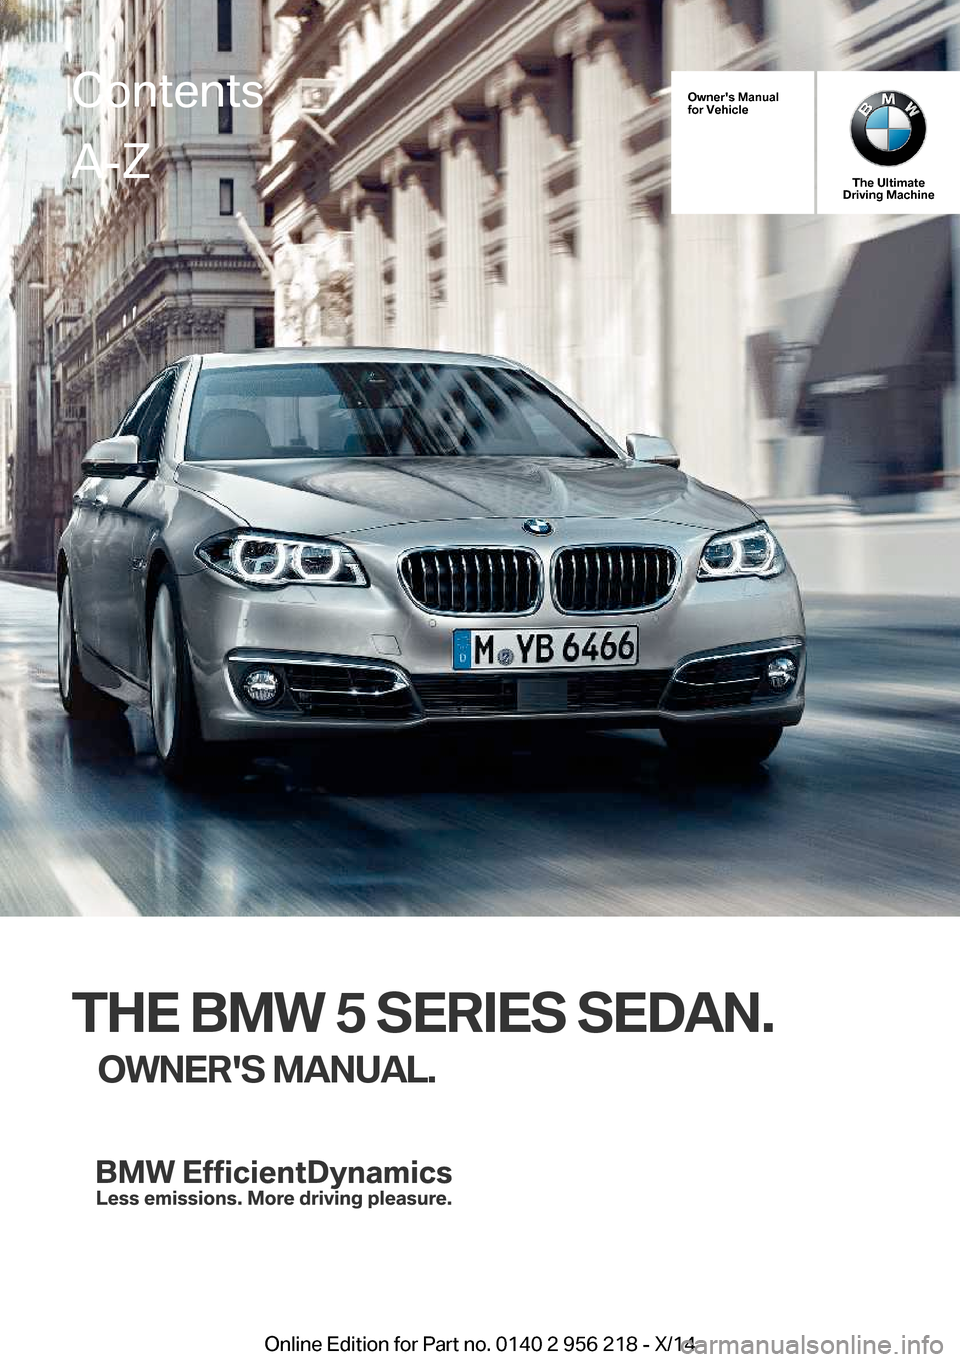 BMW 5 SERIES 2014 F10 Owner's Manual (273 Pages)